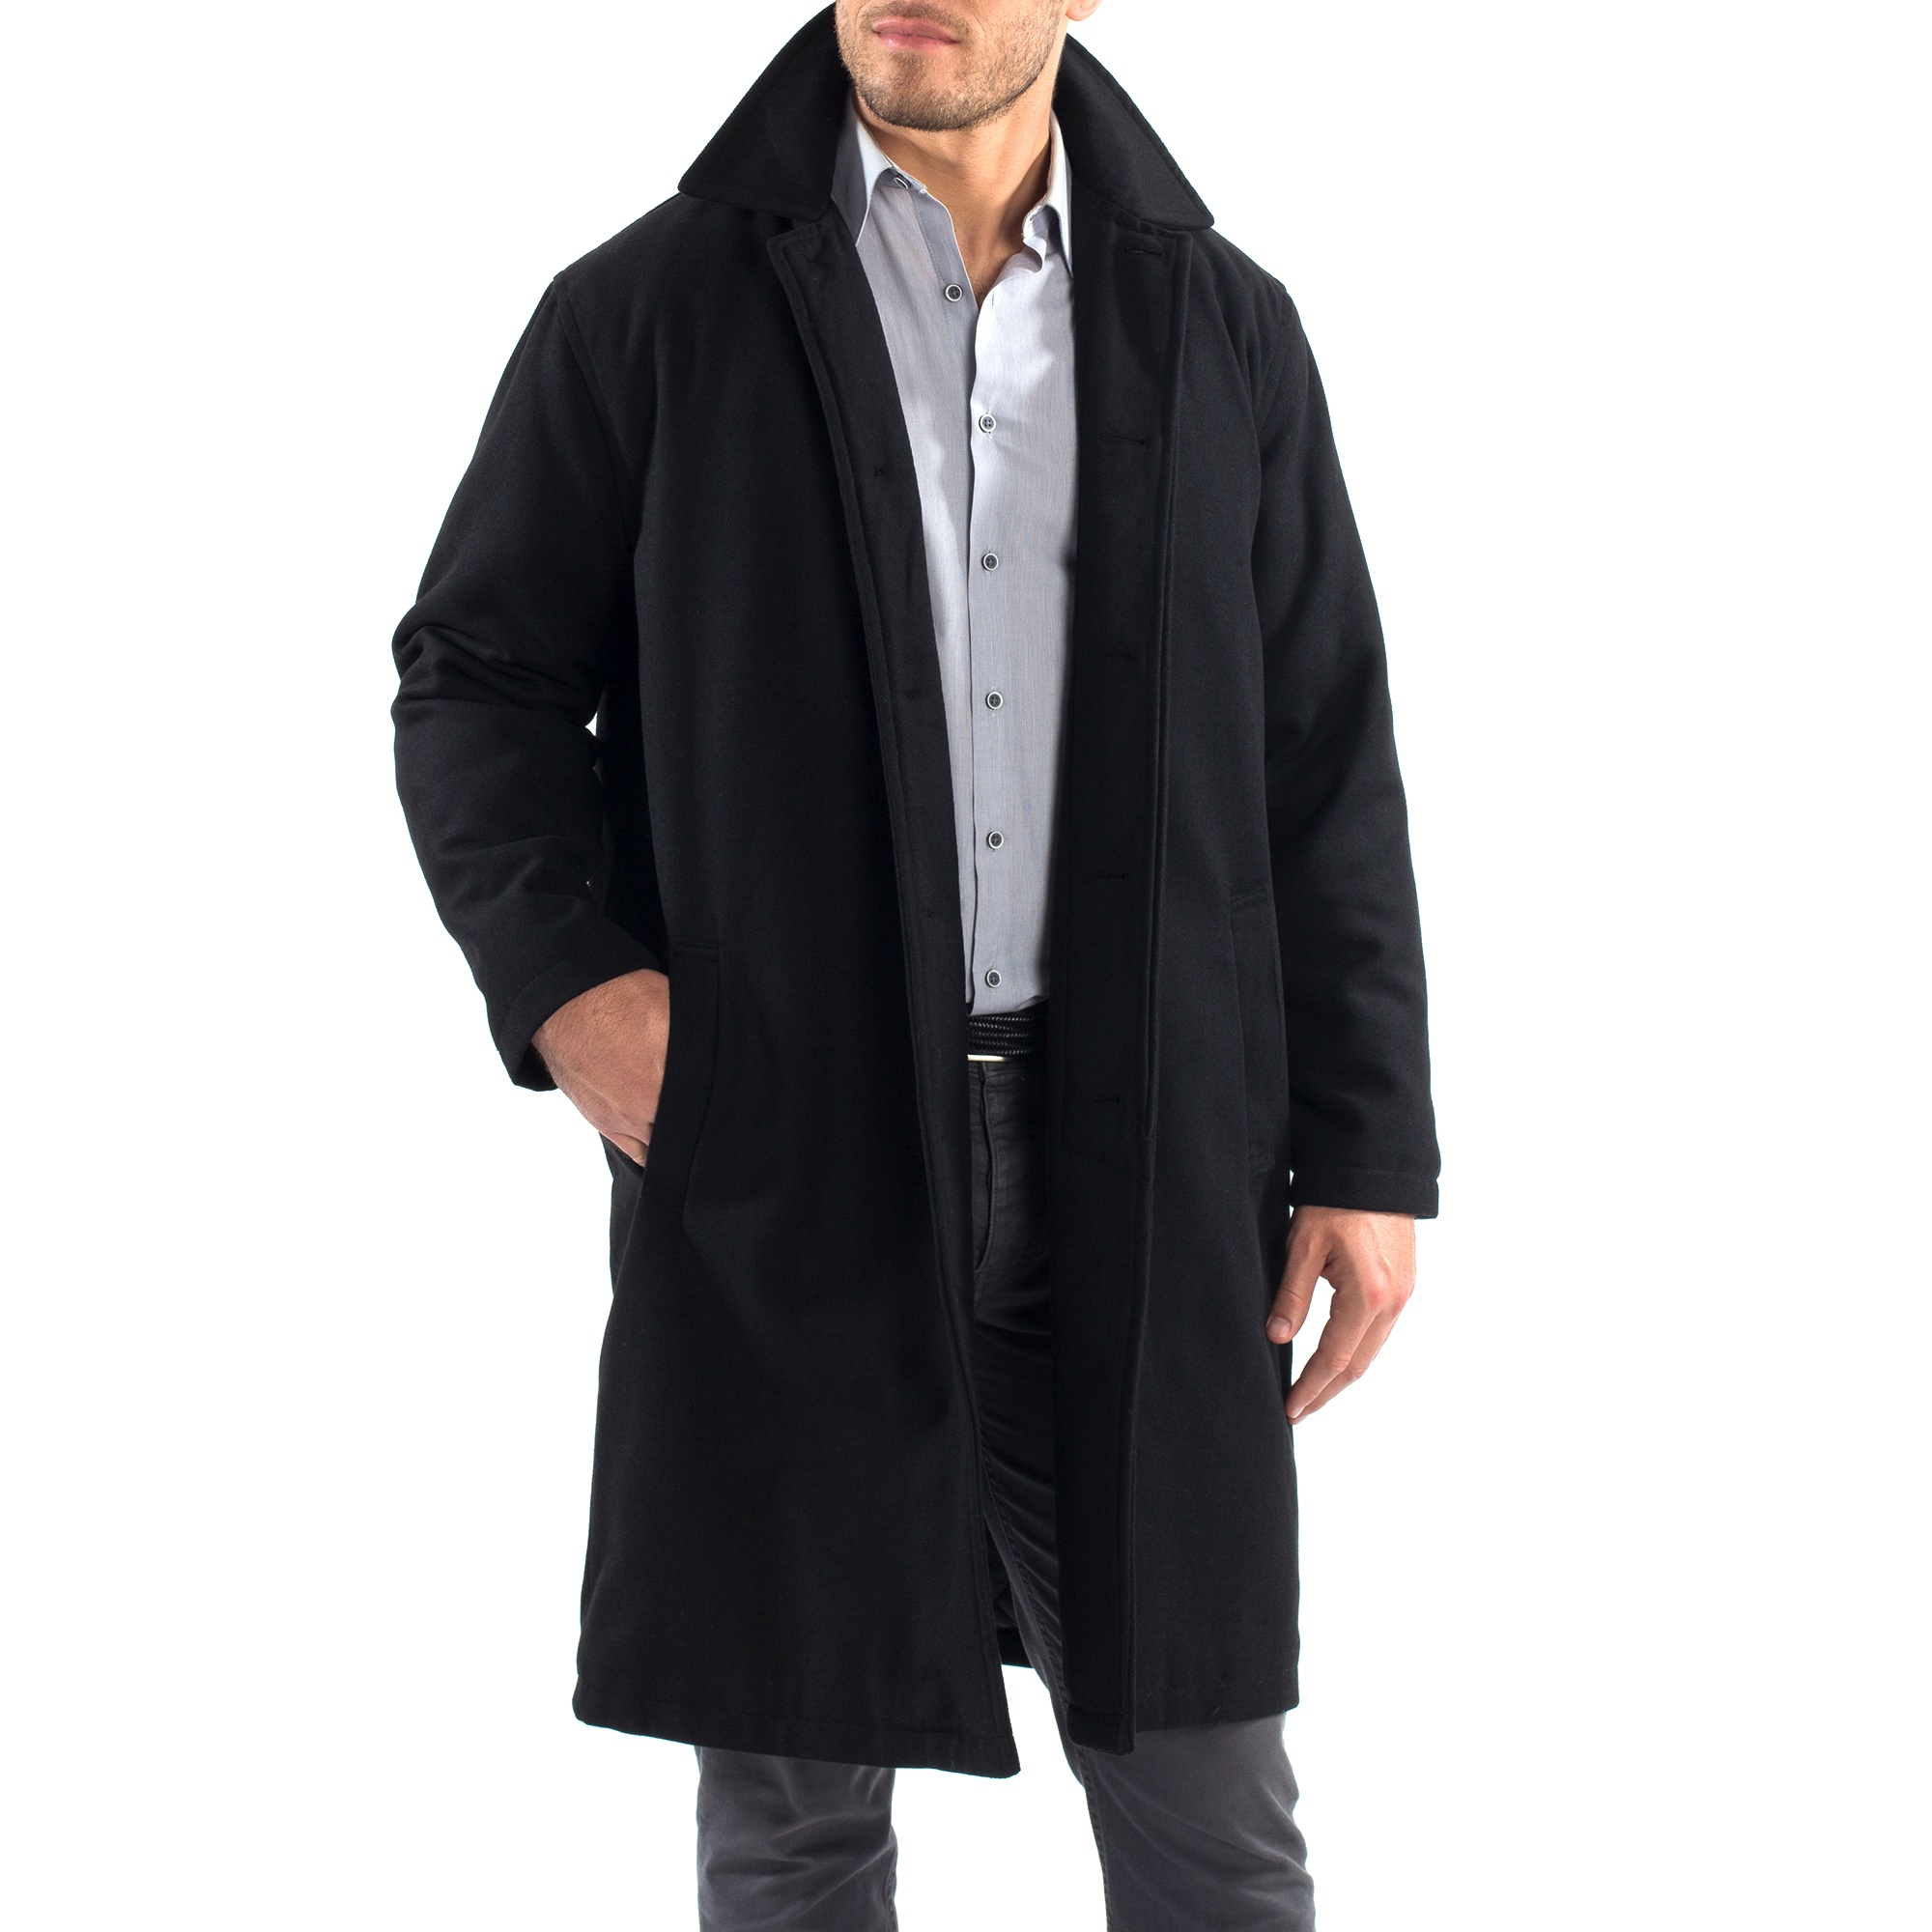 Alpine-Swiss-Mens-Zach-Knee-Length-Jacket-Top-Coat-Trench-Wool-Blend-Overcoat thumbnail 18